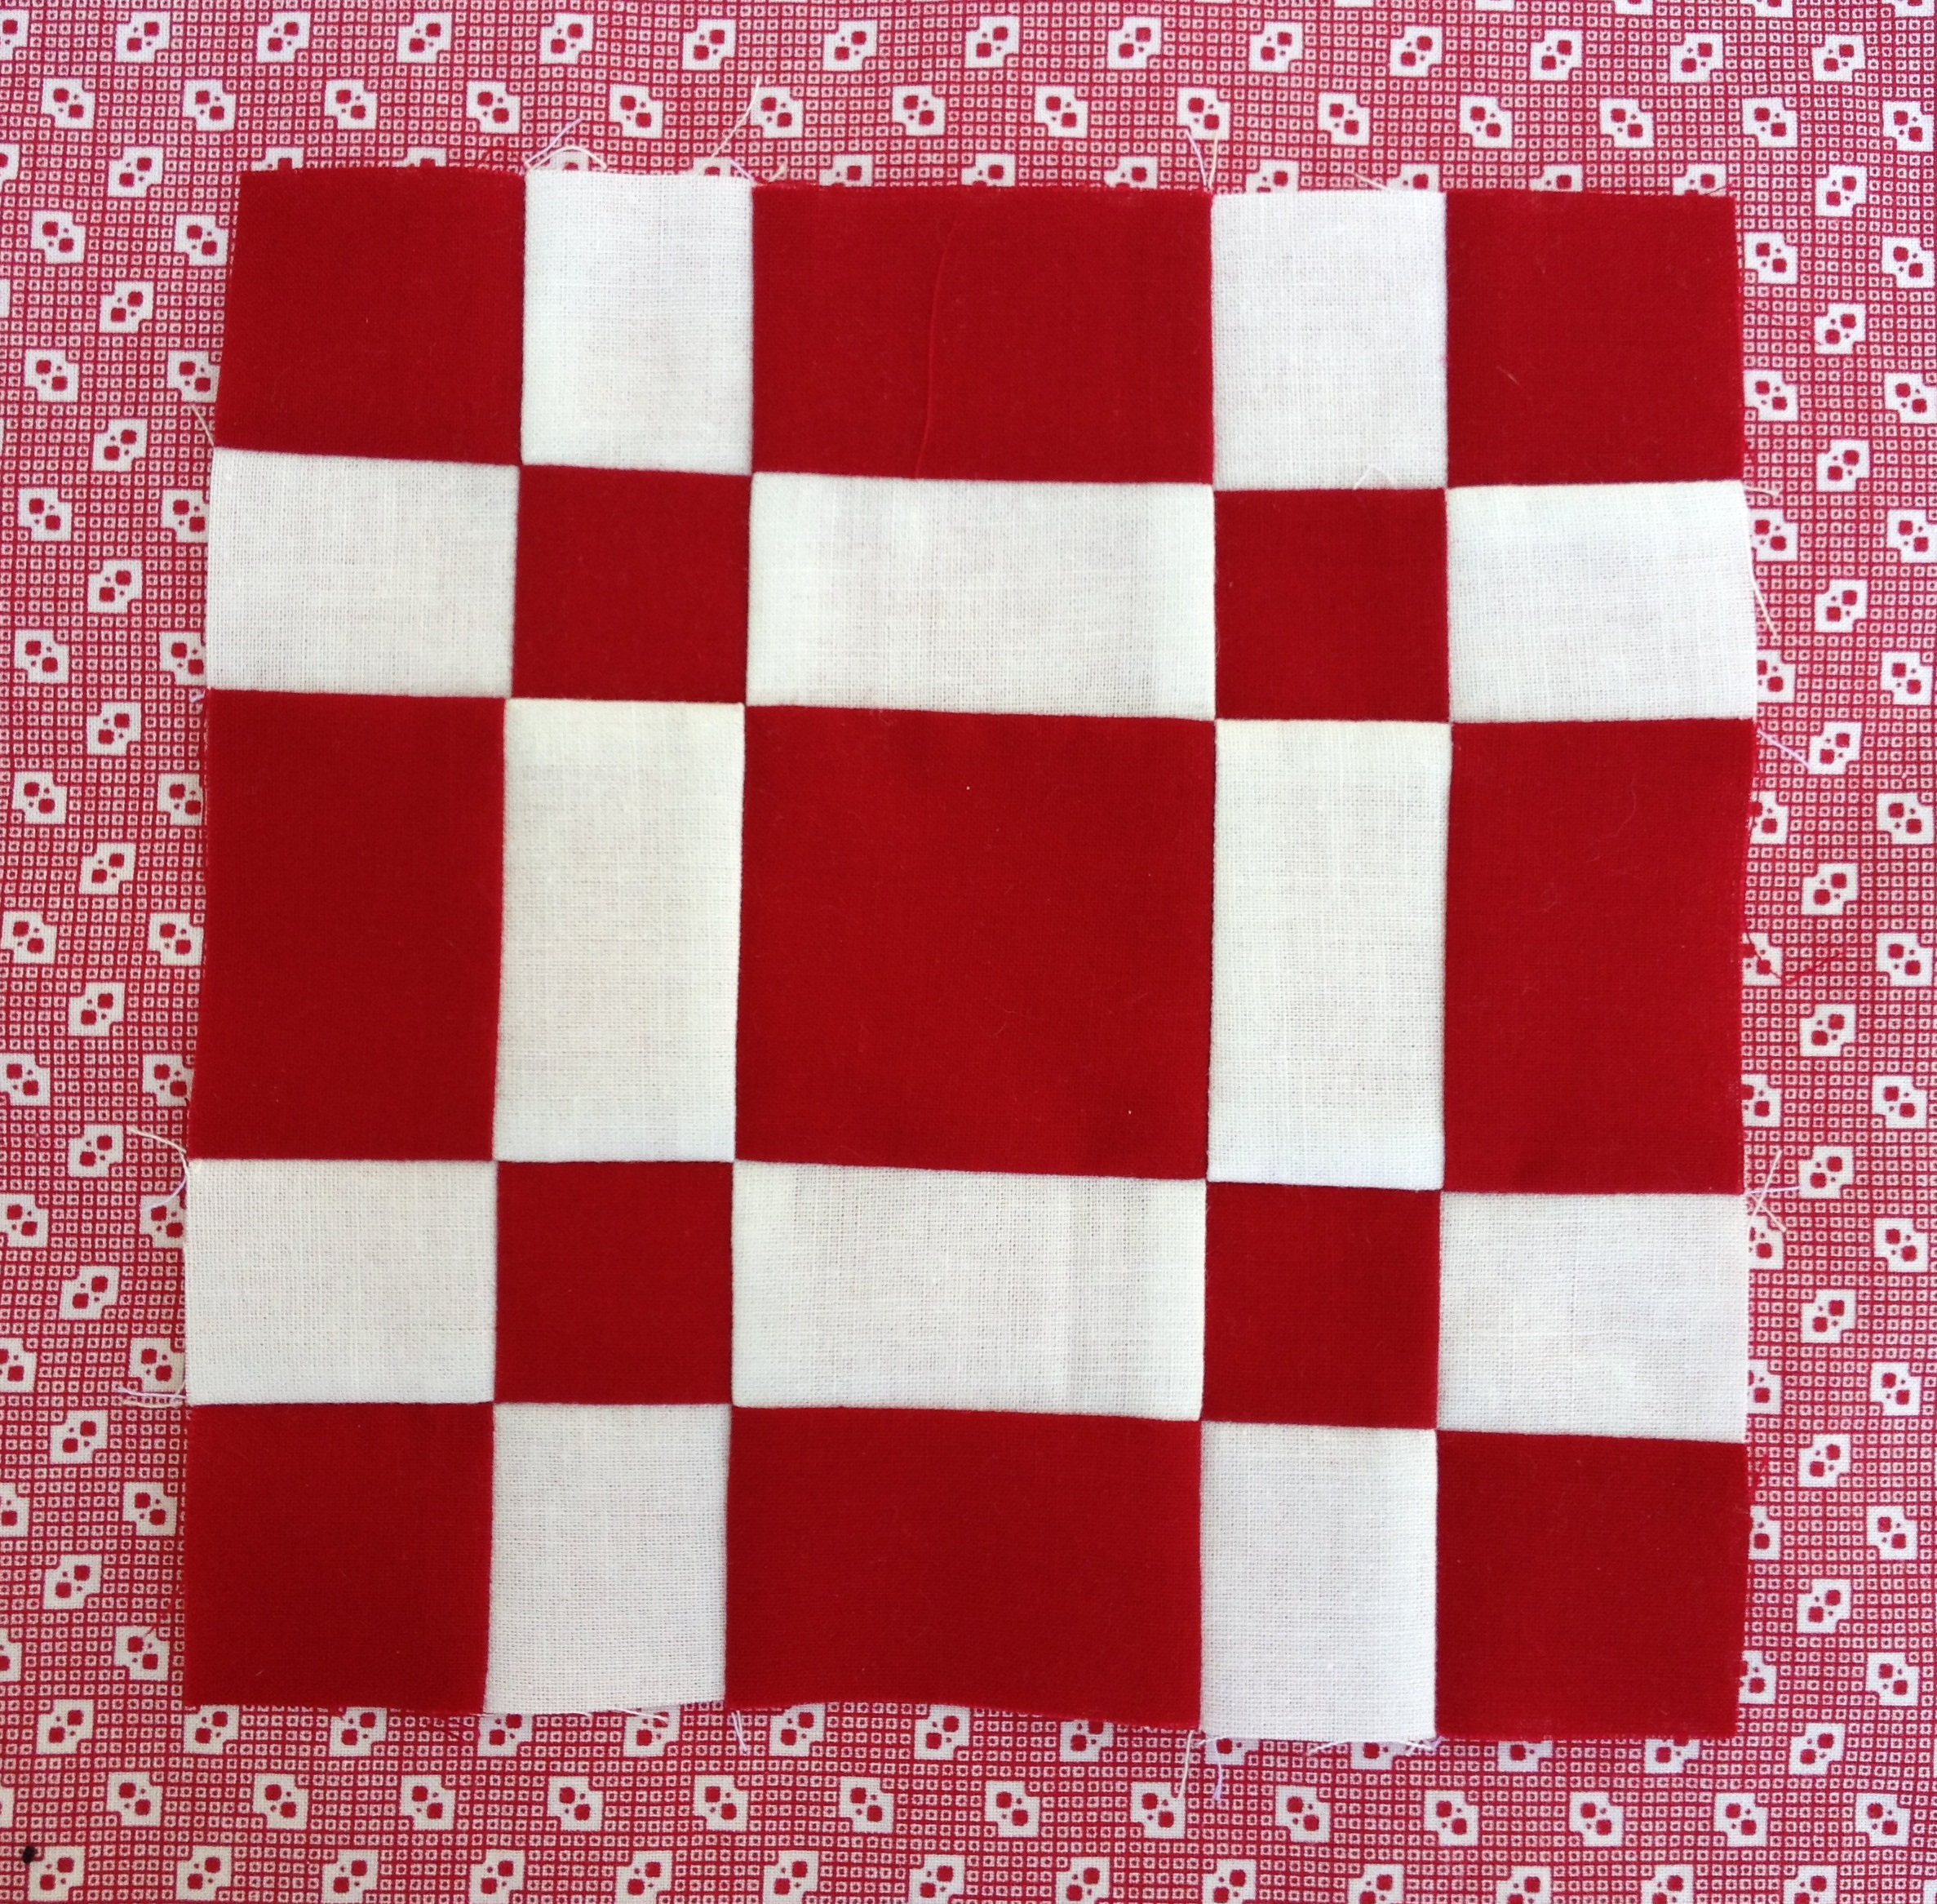 Sentimental Stitches Where Todays Quilters Create Tomorrows